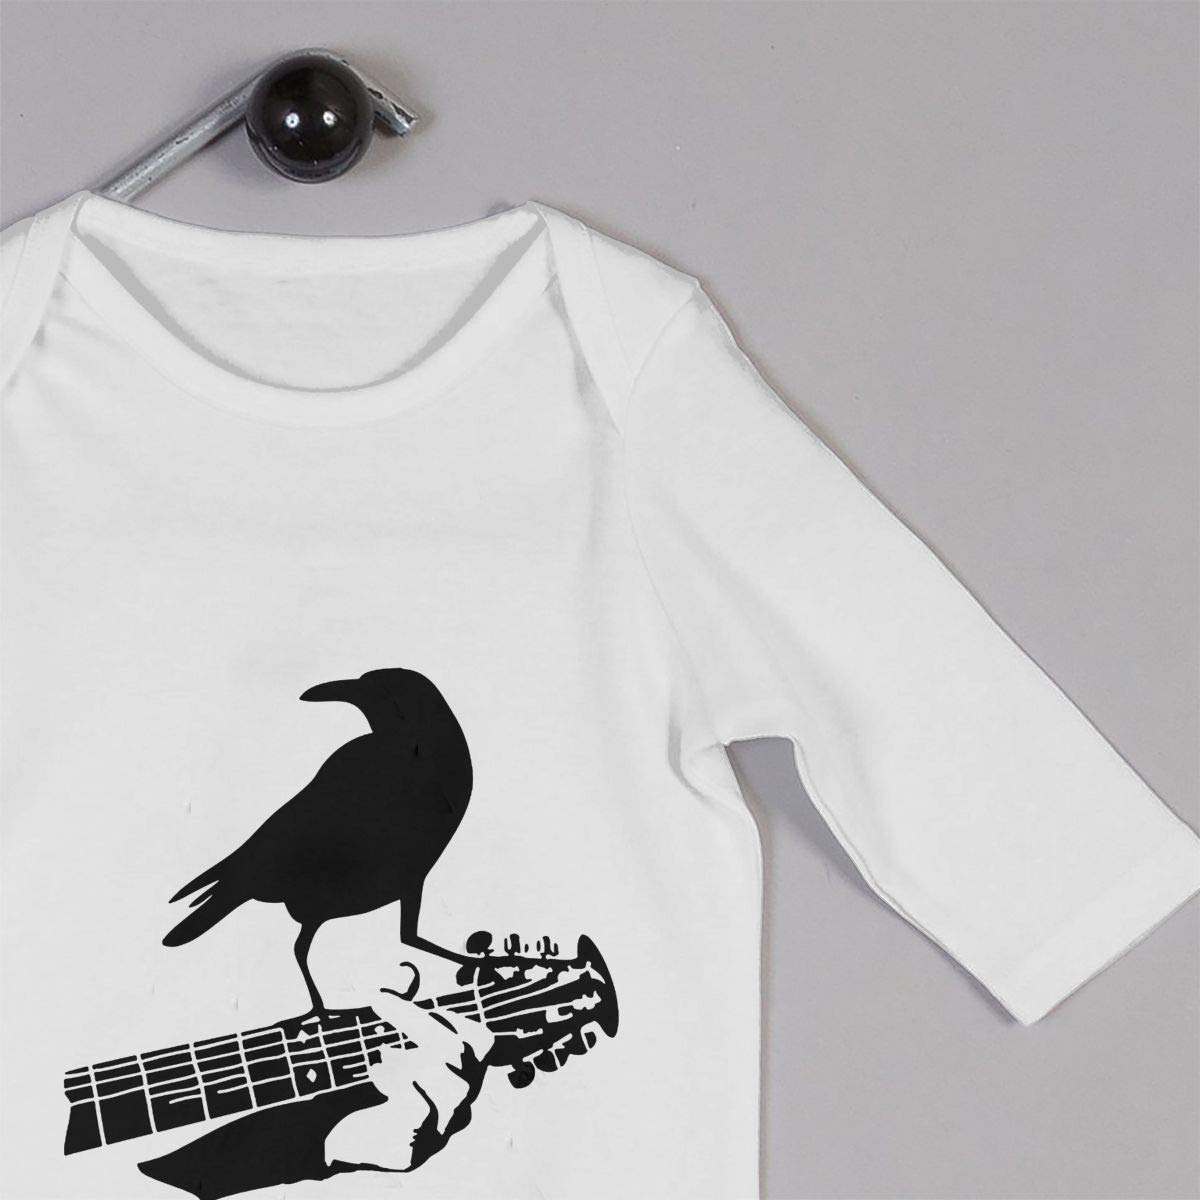 KAYERDELLE Crow Guitar Long-Sleeve Unisex Baby Playsuit for 6-24 Months Toddler